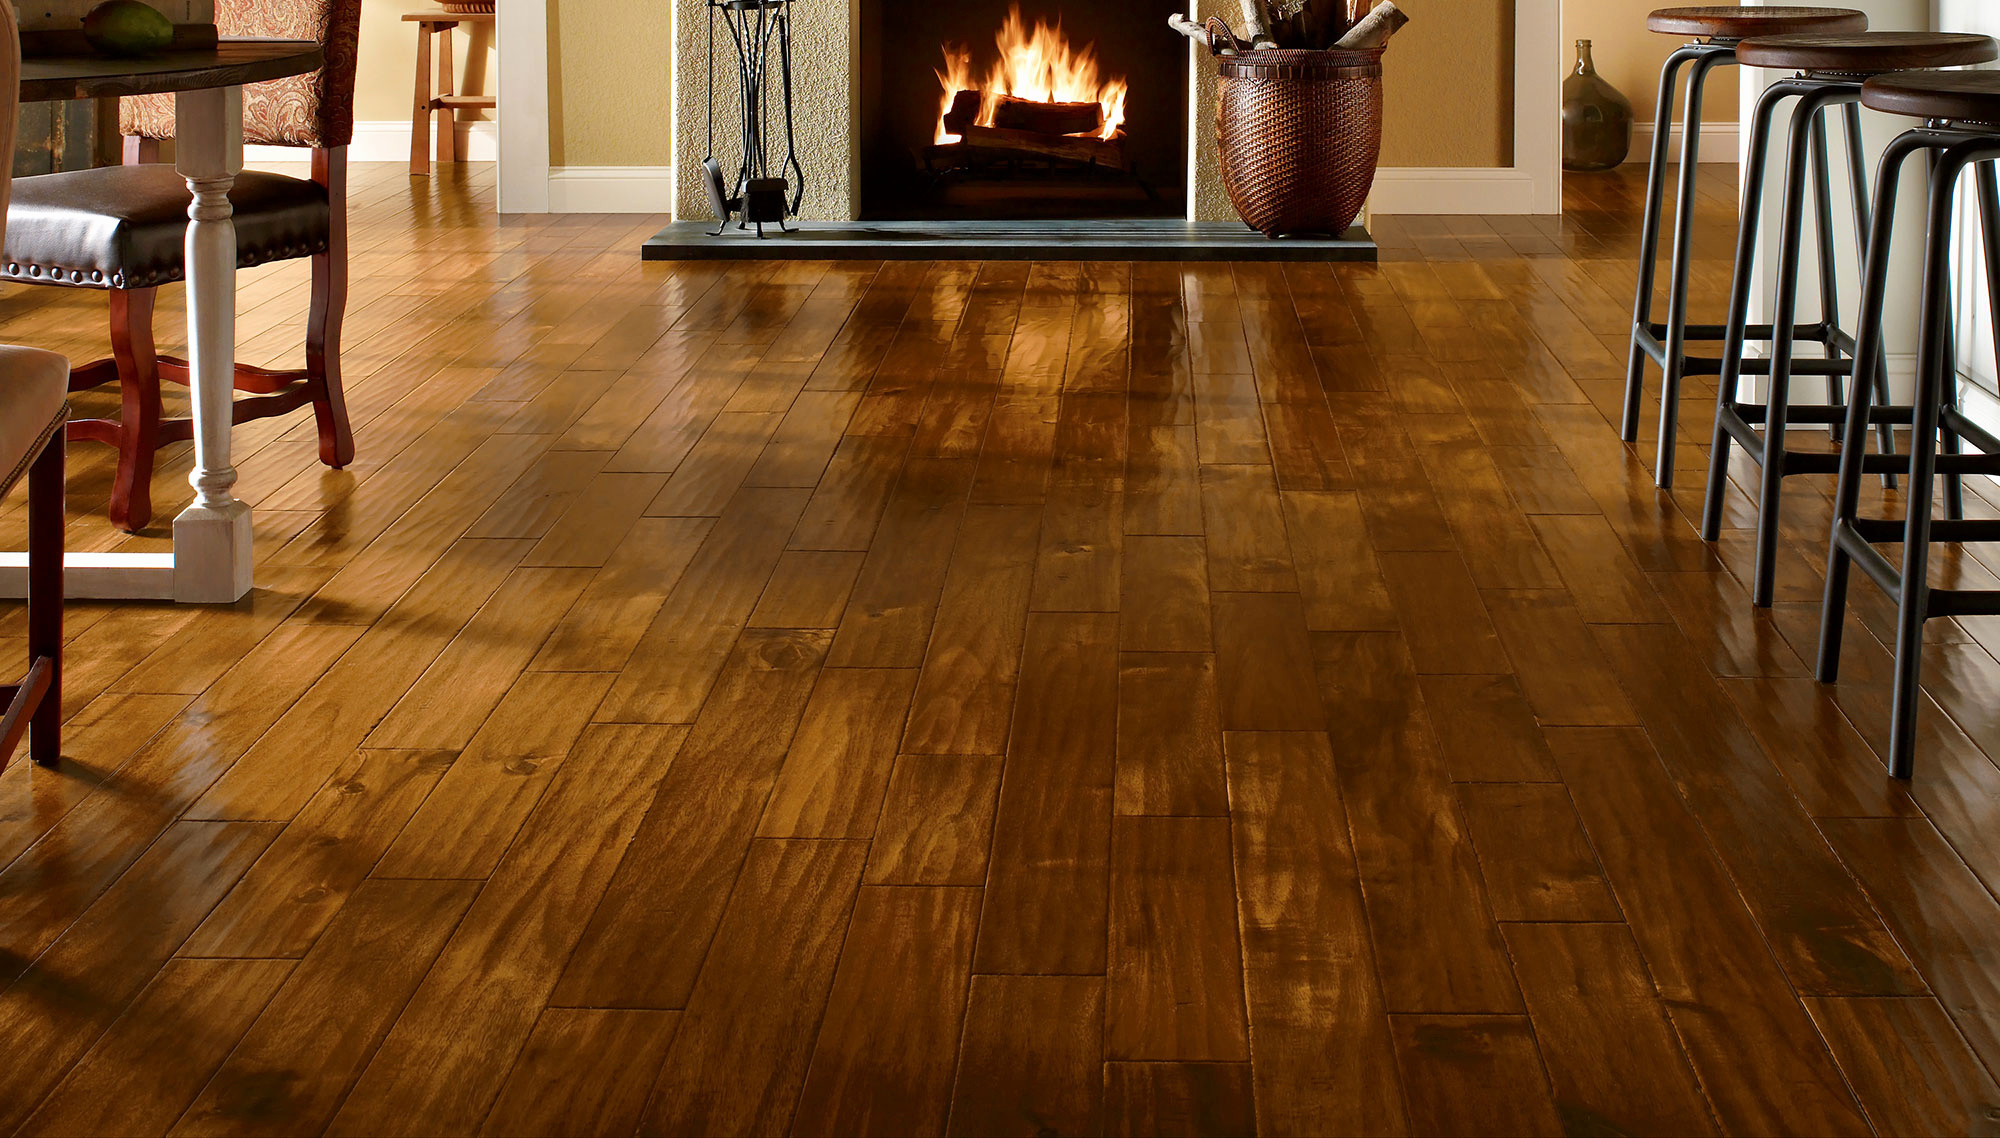 Hardwood Floor Cleaner Uk Of Hardwood Floor Installation Archives Wlcu Inside Hardwood Floor Designs Best Of Appealing Discount Hardwood Flooring 1 Big Kitchen Floor Hardwood Floor